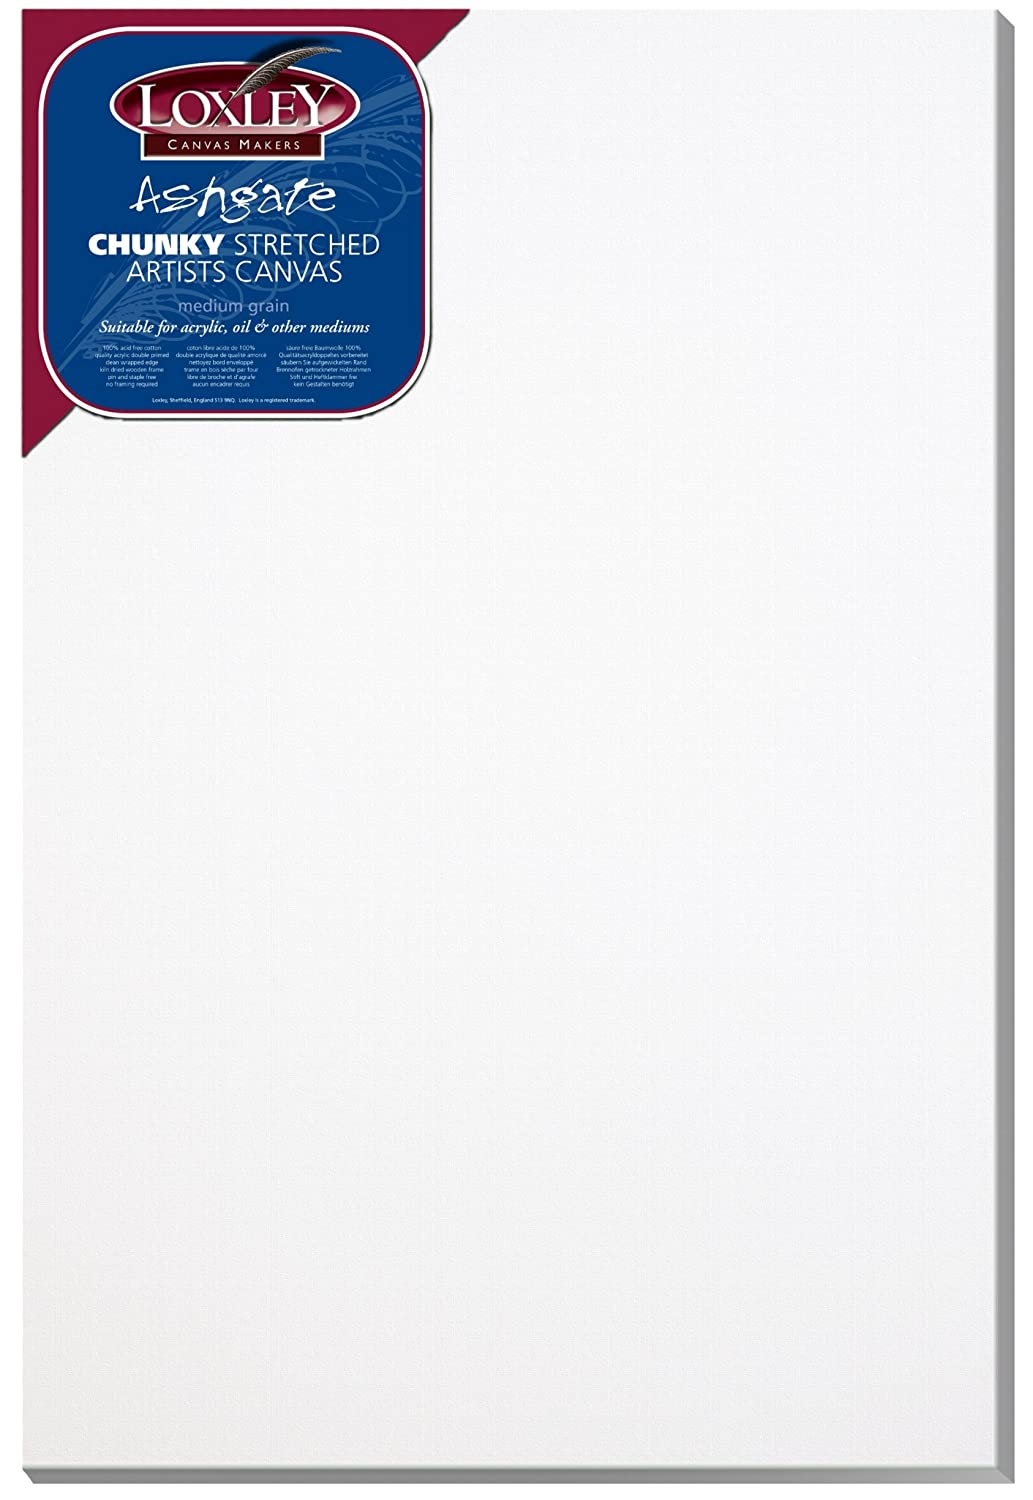 Loxley 36 x 24-inch Deep 36 mm Edge Ashgate Chunky Stretched Artists Canvas, White Colourfull Arts ACC-3624